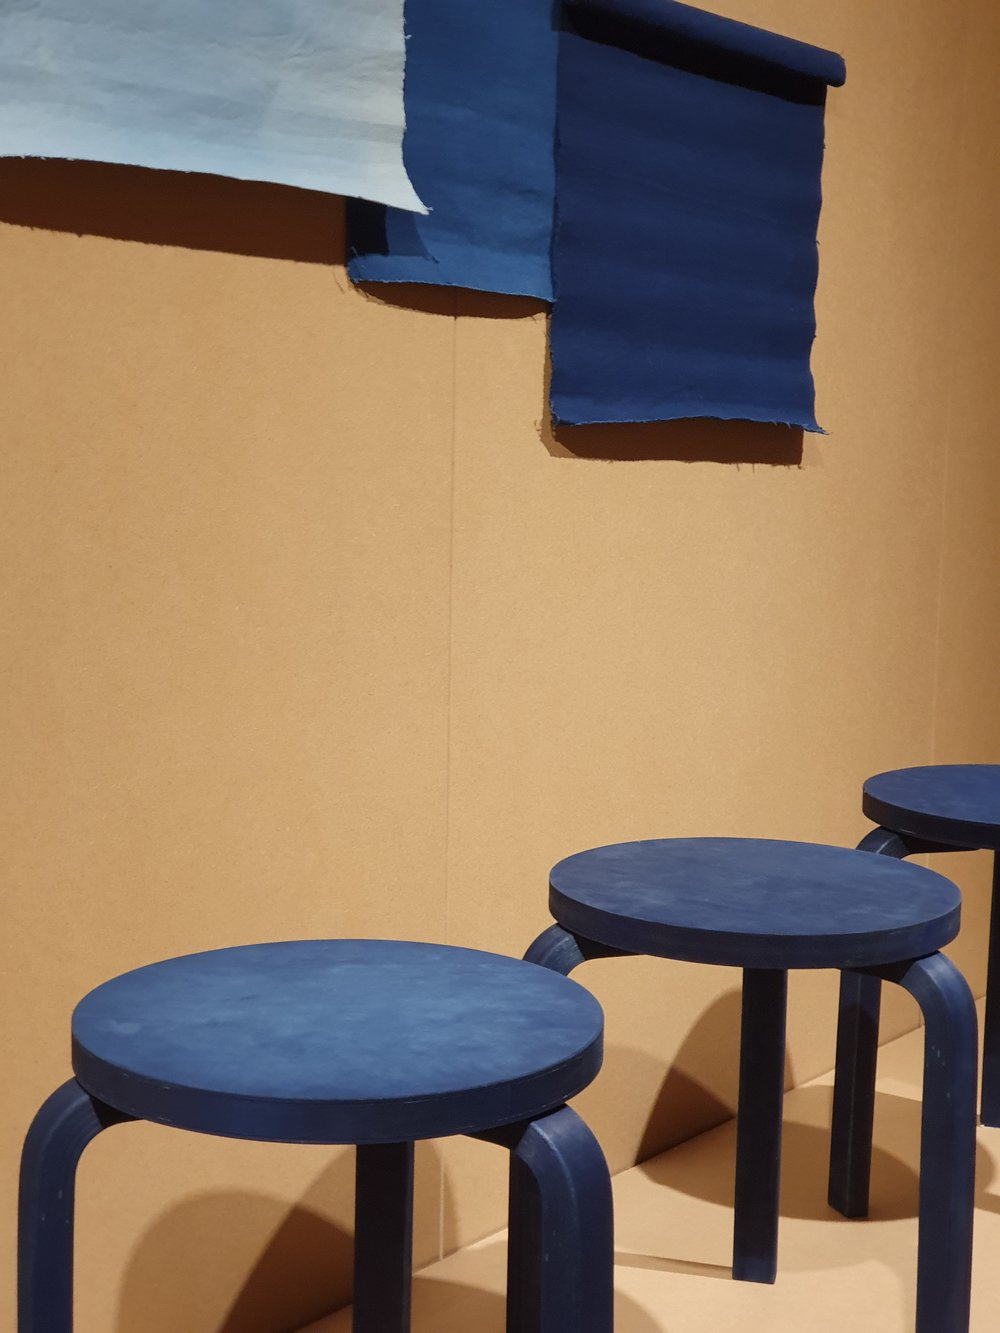 """""""Stool 60 Aizome brings together Alvar Aalto's iconic design with a traditional plant-based Japanese colouring technique. Indigo dyeing, or """"aizome"""" in Japanese, is a popular process used to create denim and is now applied to turn the stool a characteristic deep blue. Often used in fashion and textile design, the tradition of indigo dyeing is deeply rooted in the Japanese conscious and the vibrant colour it produces is also known as """"Japanese blue"""". To create this version of Stool 60, Artek partnered with indigo-dye specialist BUAISOU from the Tokushima prefecture. The indigo they use is among the most difficult dyes to produce, highly prized for its beauty, depth of colour and resistance to running. Employing a technique known as """"Jigoku date"""", which translates as """"producing hell"""", wood lye, bran and shell-ash are mixed, before fermentation. Stool 60 is dipped in this indigo bath, resulting in a strongly pigmented, deep blue surface that still allows the natural grain of the wood to shine through."""